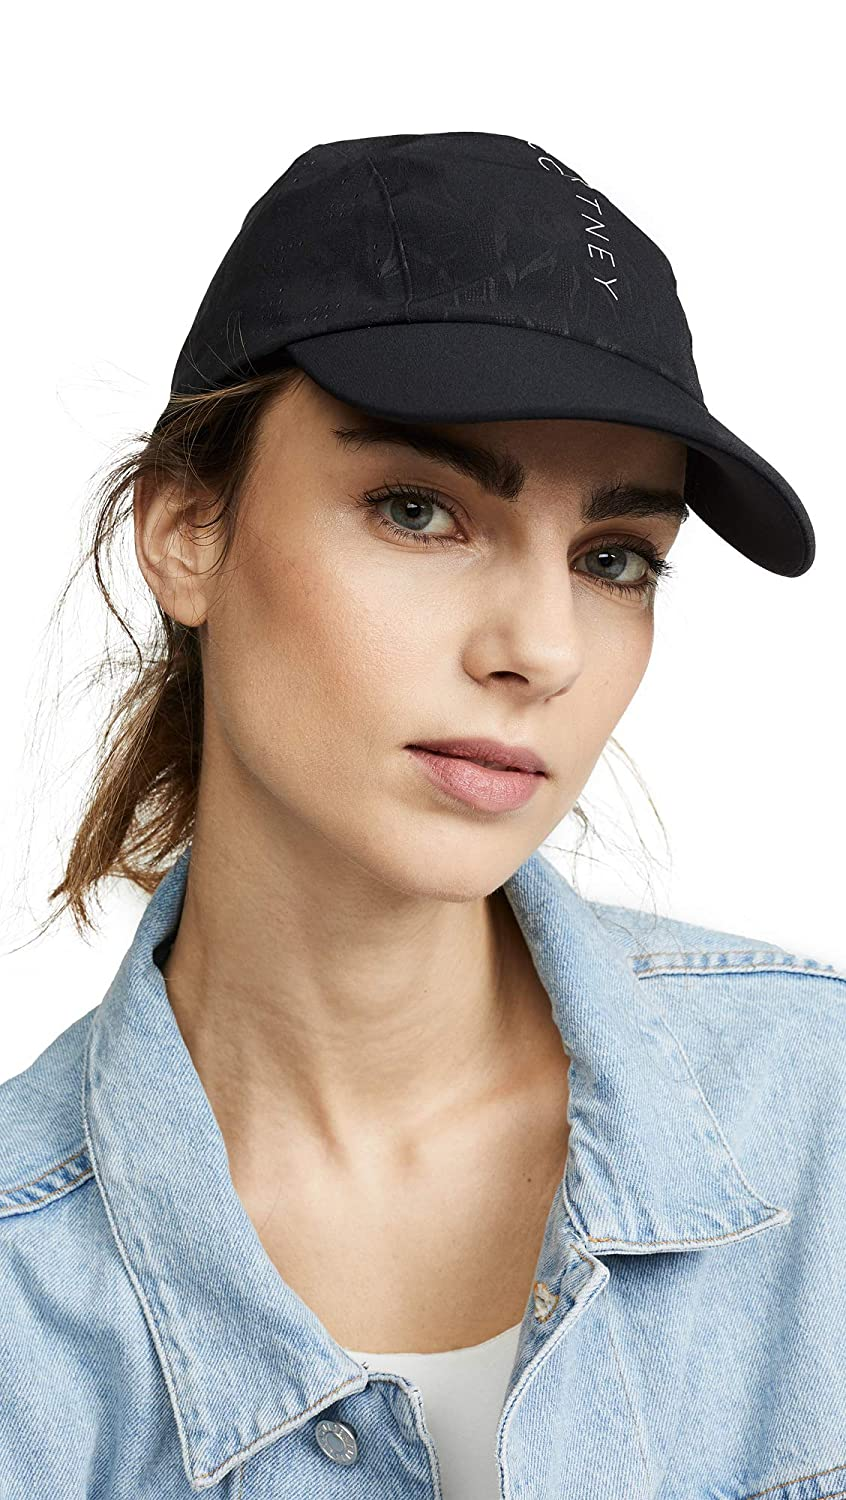 449e15caa38 Amazon.com  adidas by Stella McCartney Women s Running Hat